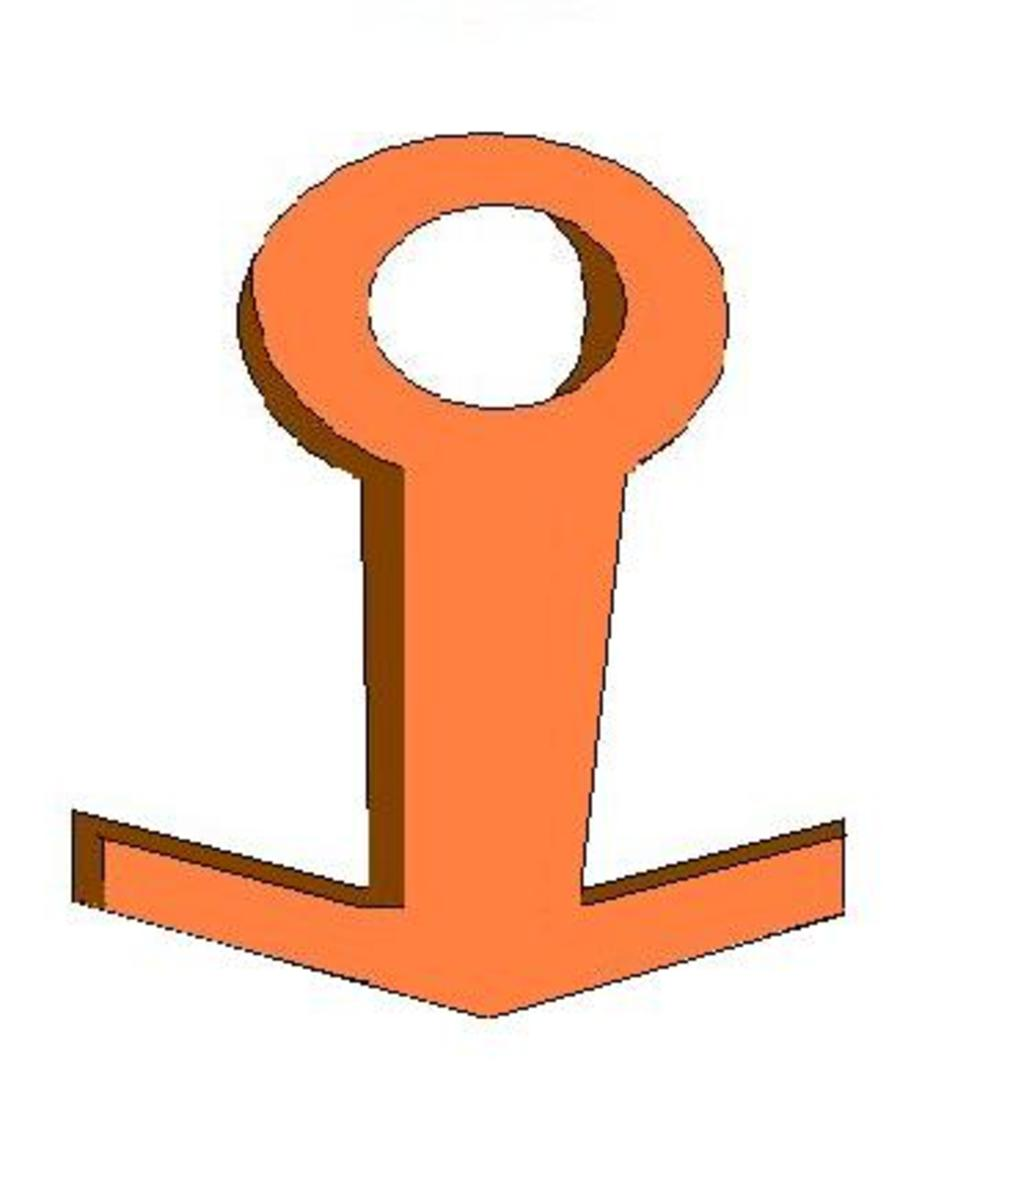 The Anchor - used to ensure that ships do not go adrift